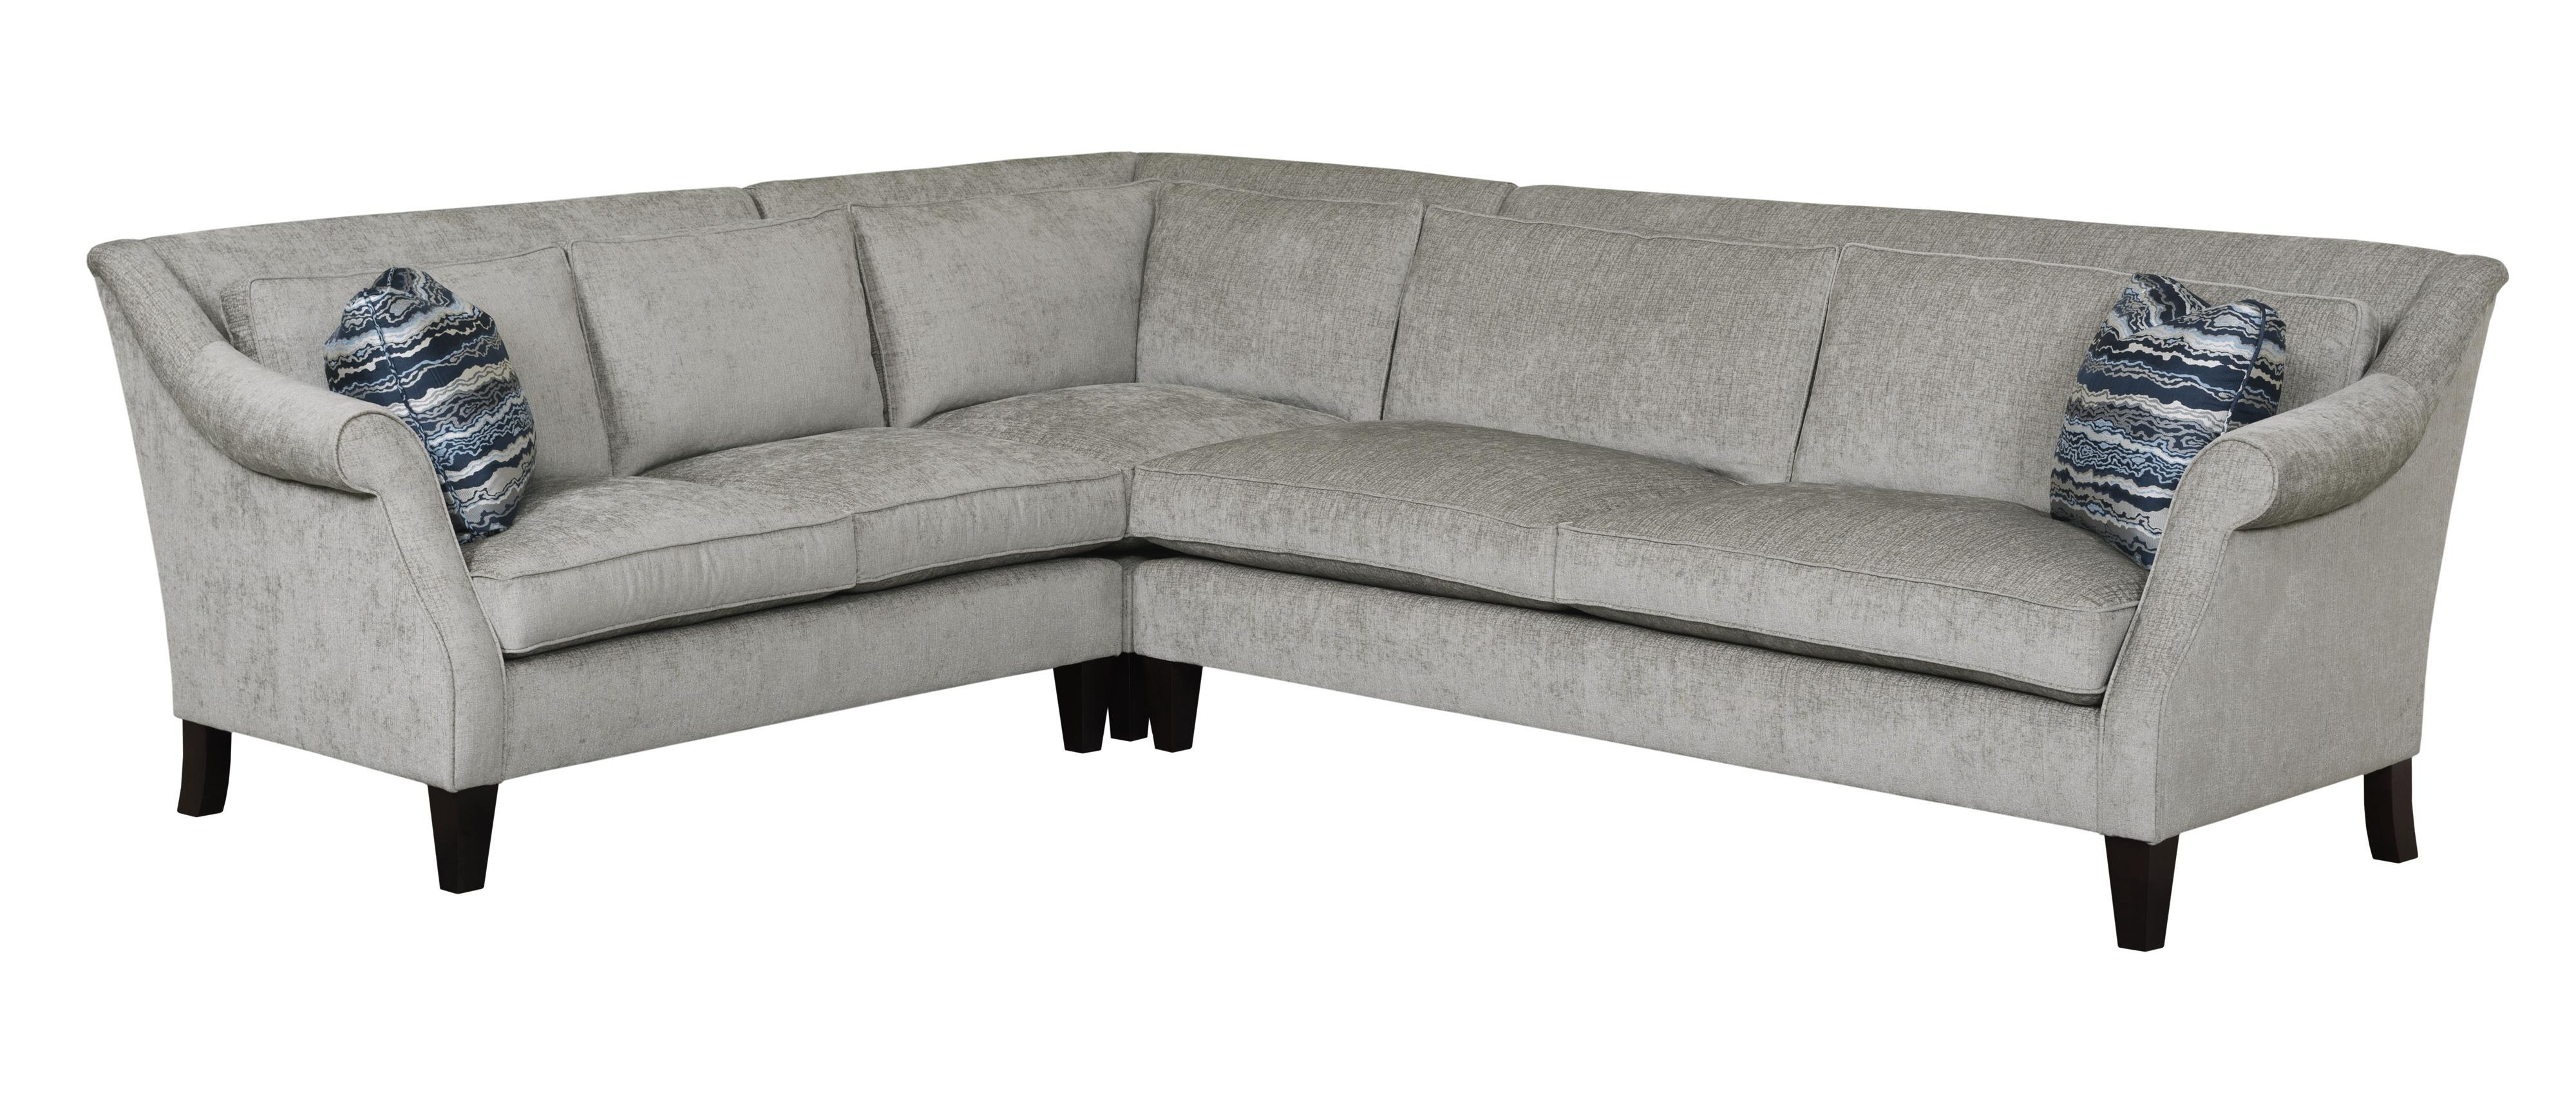 Bench : Beautiful Wooden Settee Bench Classic Gray L Shaped Intended For Bench Style Sofas (Image 2 of 20)